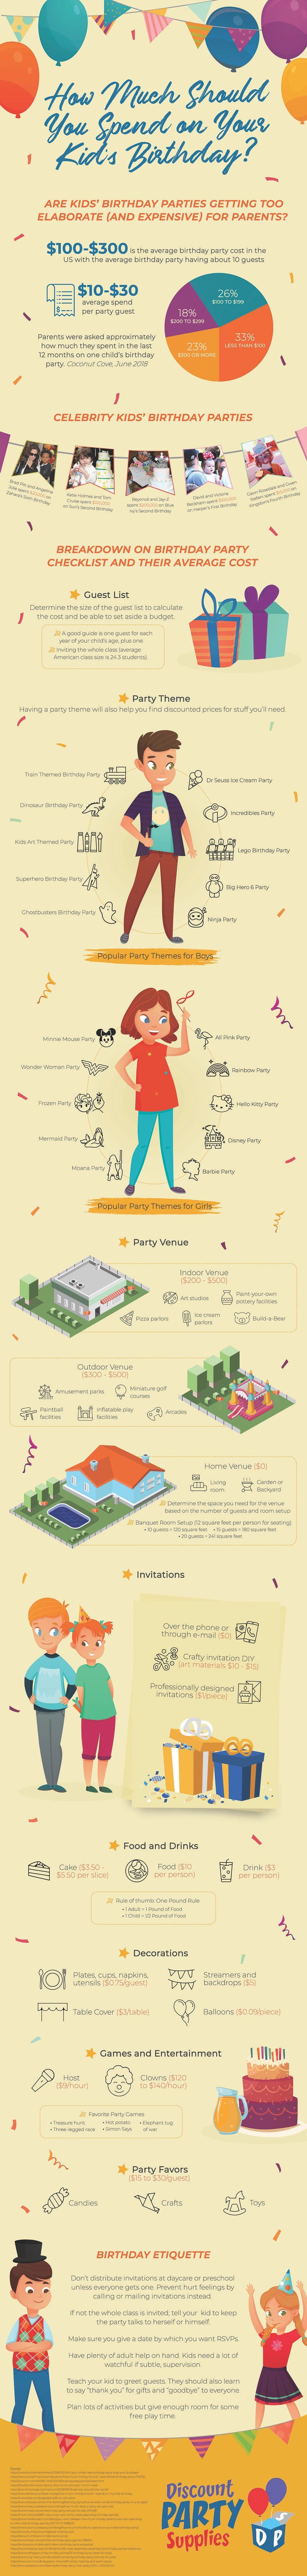 How to Create Amazing Birthdays on a Budget - Infographic